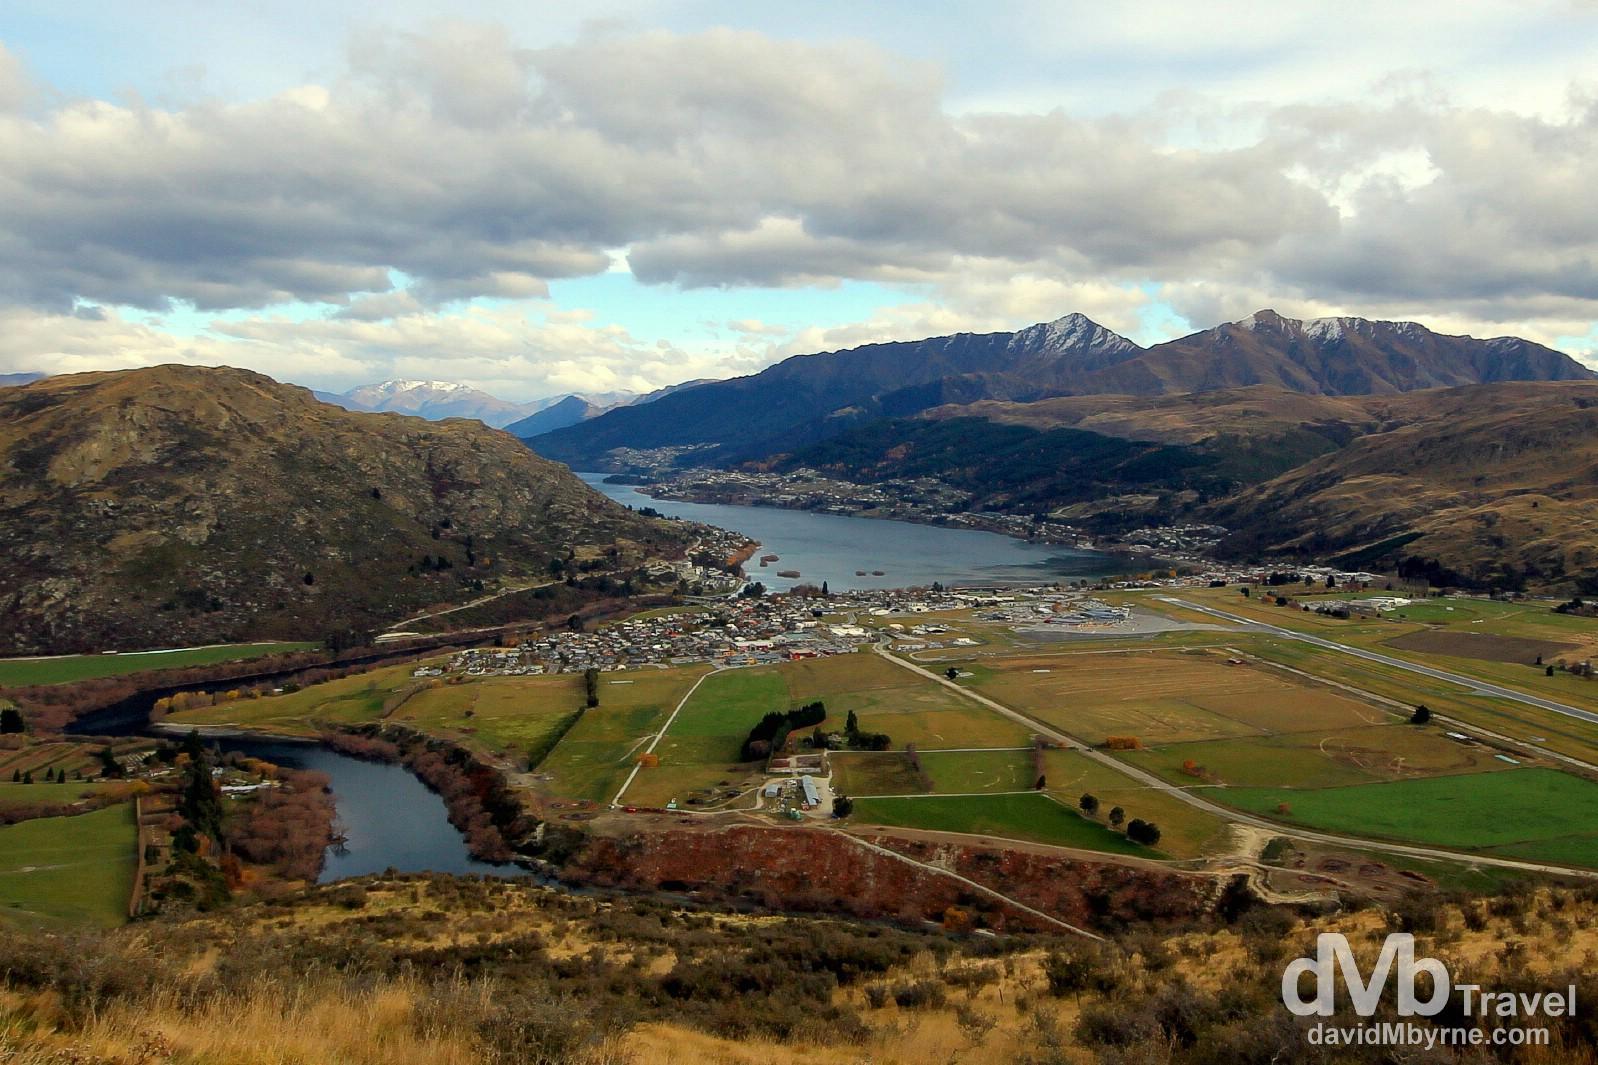 Frankton & Queenstown as seen from the road to The Remarkables ski field, South Island, New Zealand. May 24th 2012.